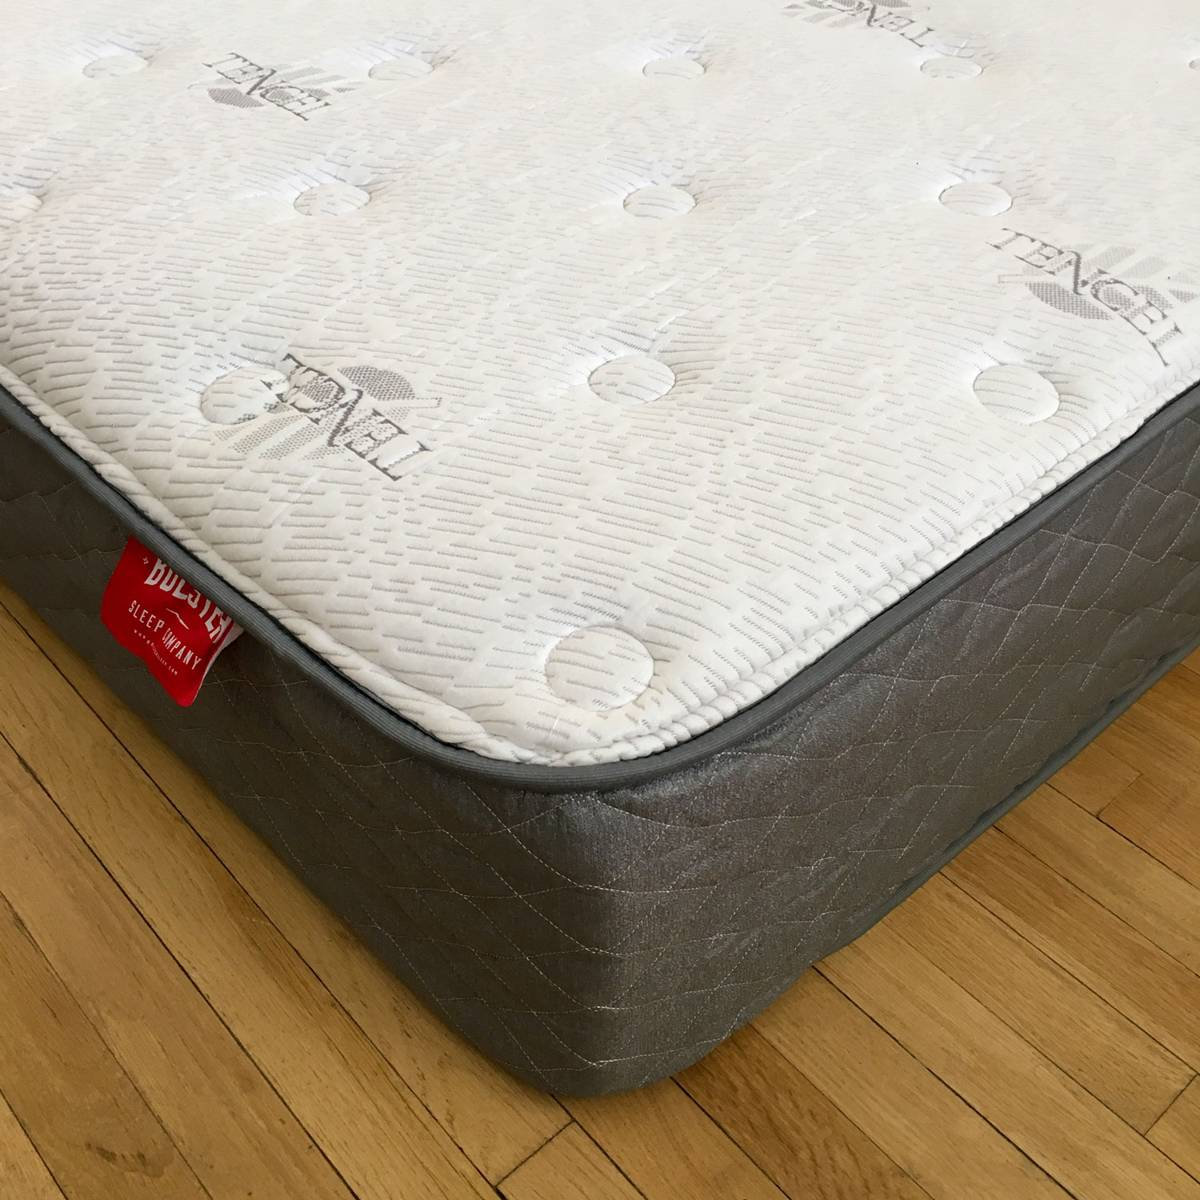 THE BOLSTER SLEEP MATTRESS  IS WELL CONSTRUCTED & 100% MADE IN THE USA